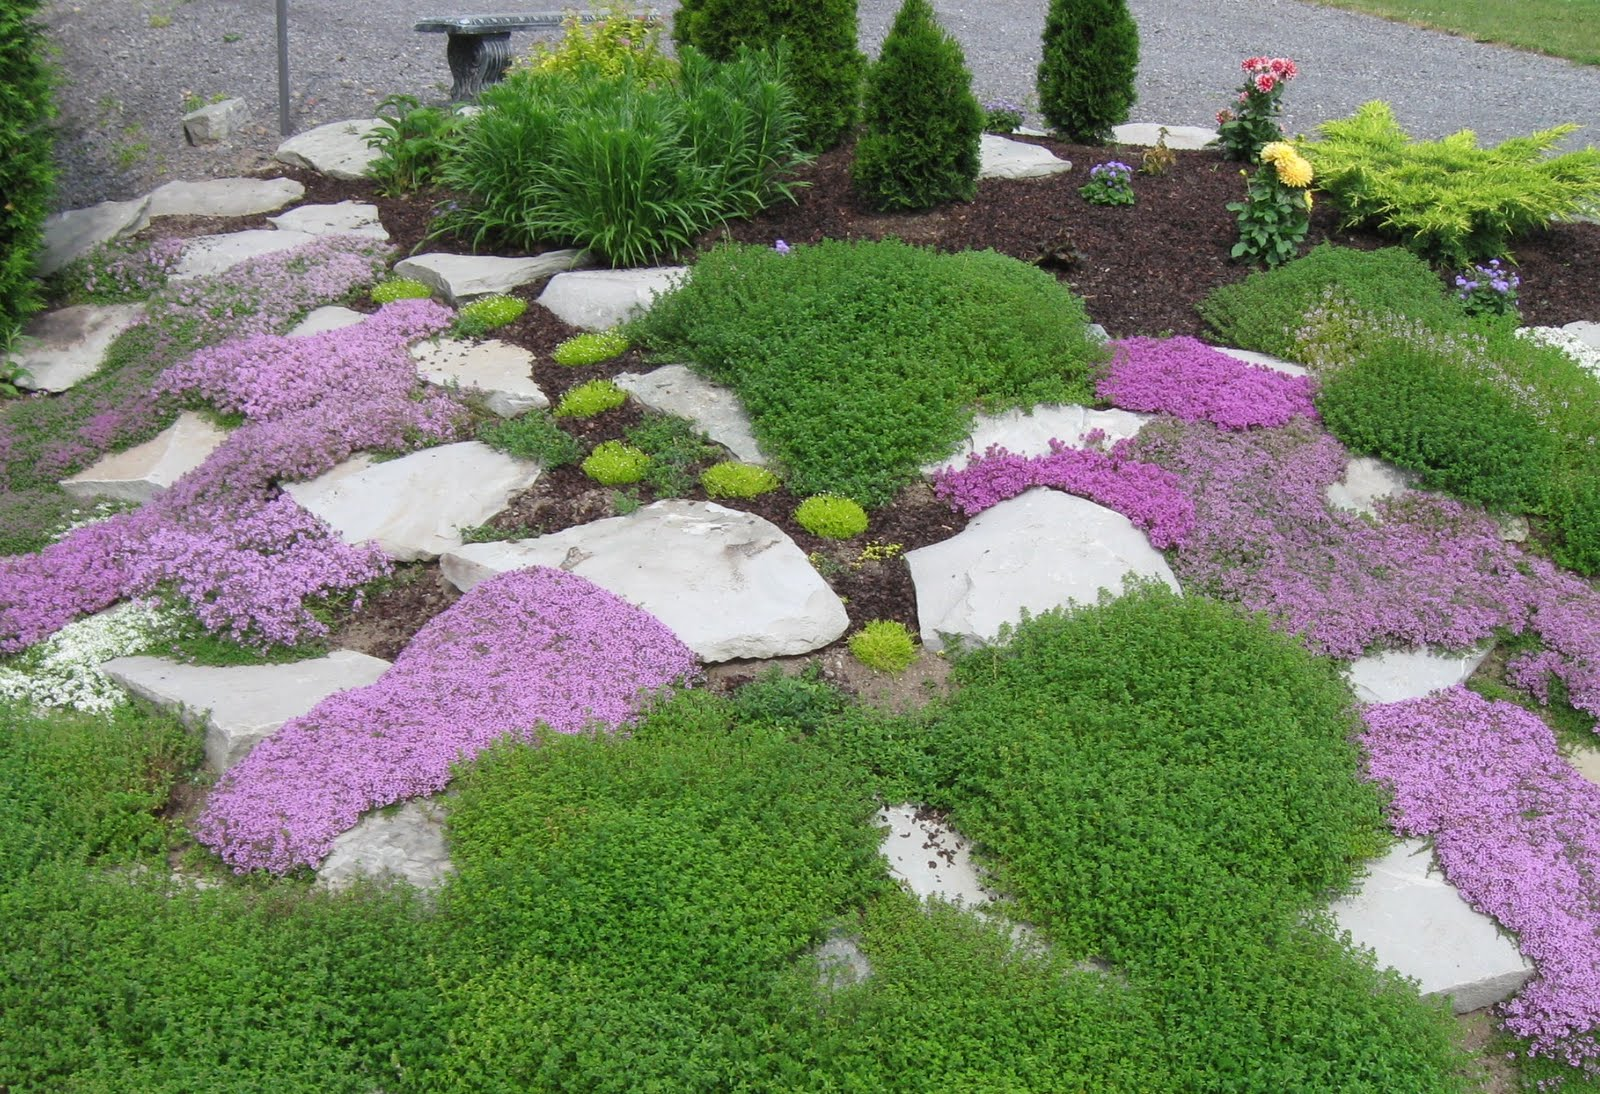 Rock Garden Decor | Home Design, Decorating and Remodeling Ideas